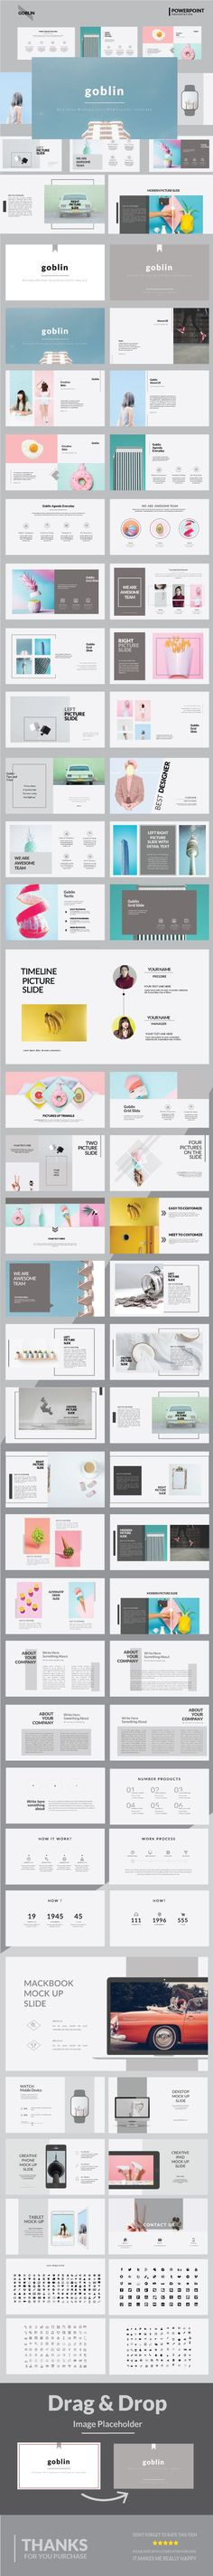 Keynote Presentation Templates — Keynote KEY #tech #statistics • Download ➝ graphicriver.net/...